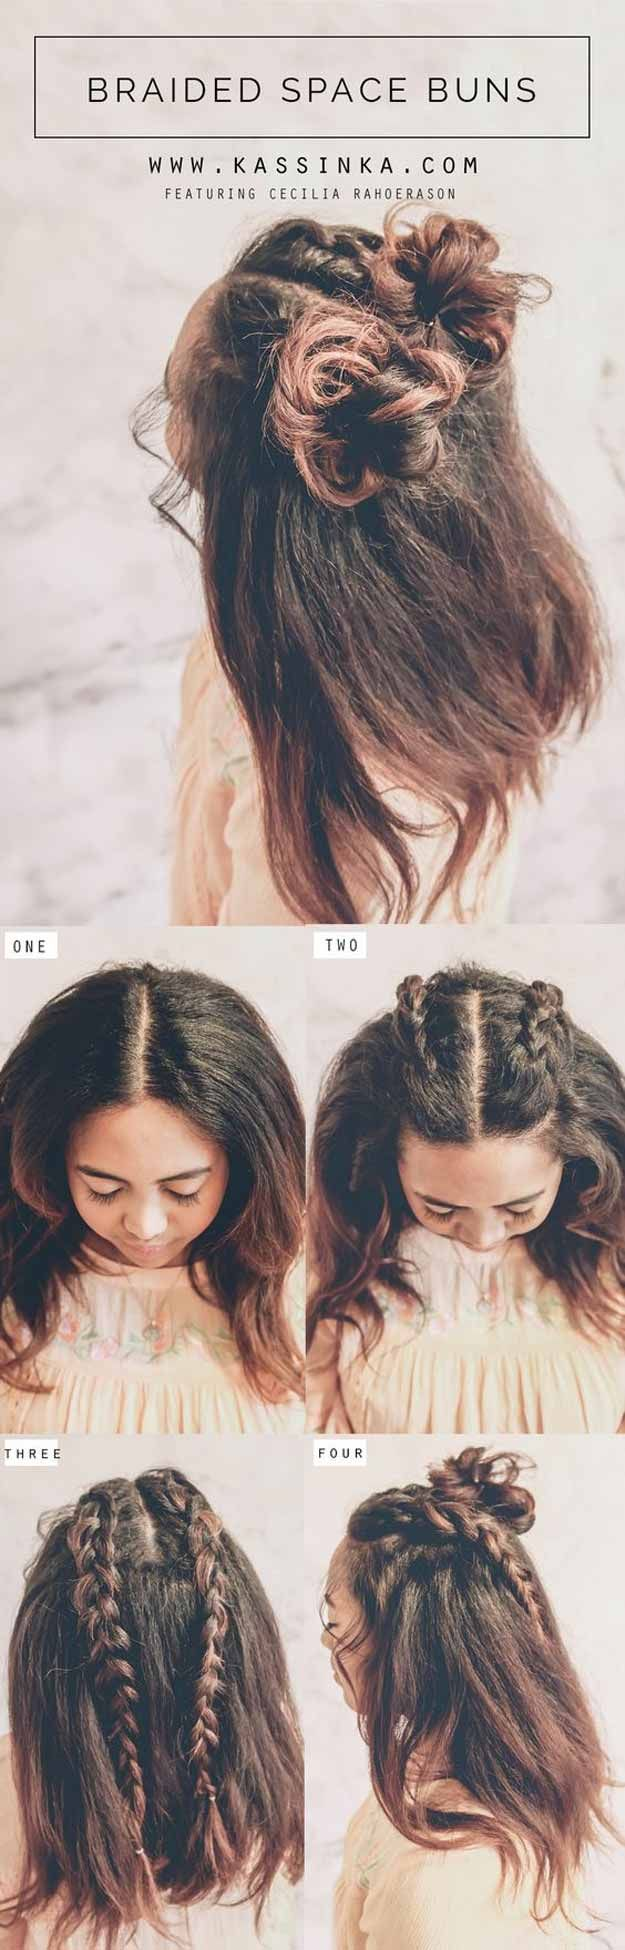 Best Pinterest Hair Tutorials - Braided Space Buns - Step By Step Tutorial From ...